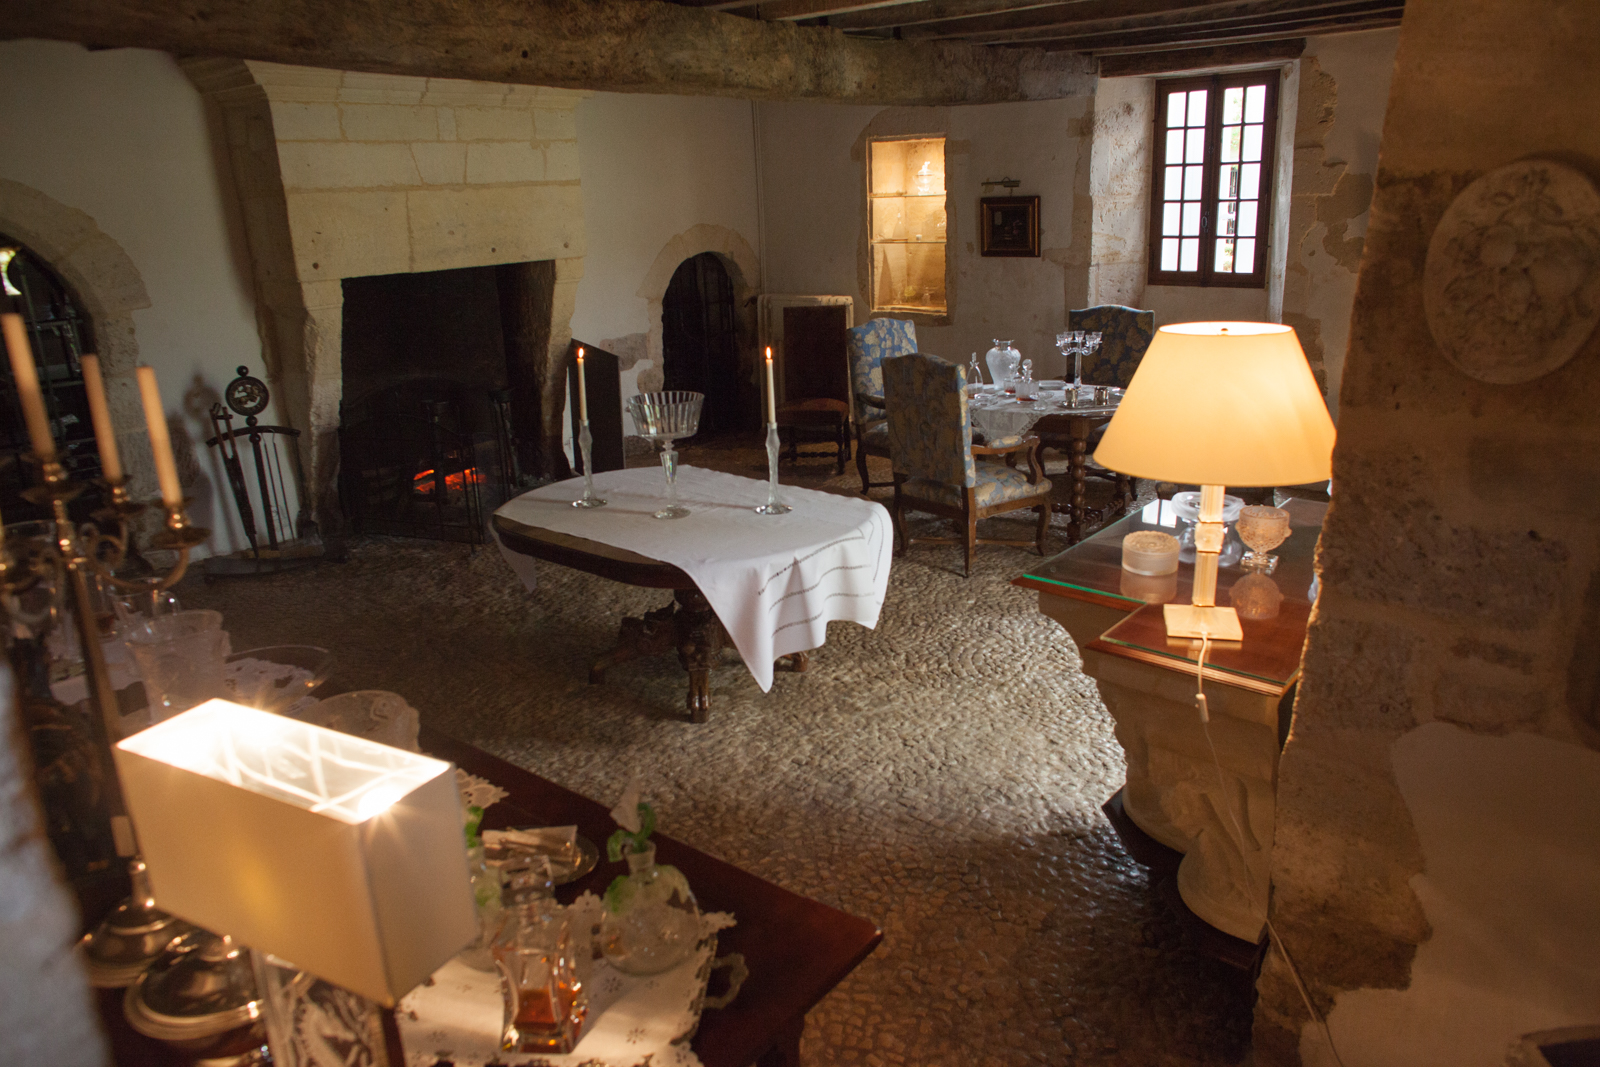 The small parlor room just off the cellar at Cognac Lhéraud. ©Kevin Day/Opening a Bottle